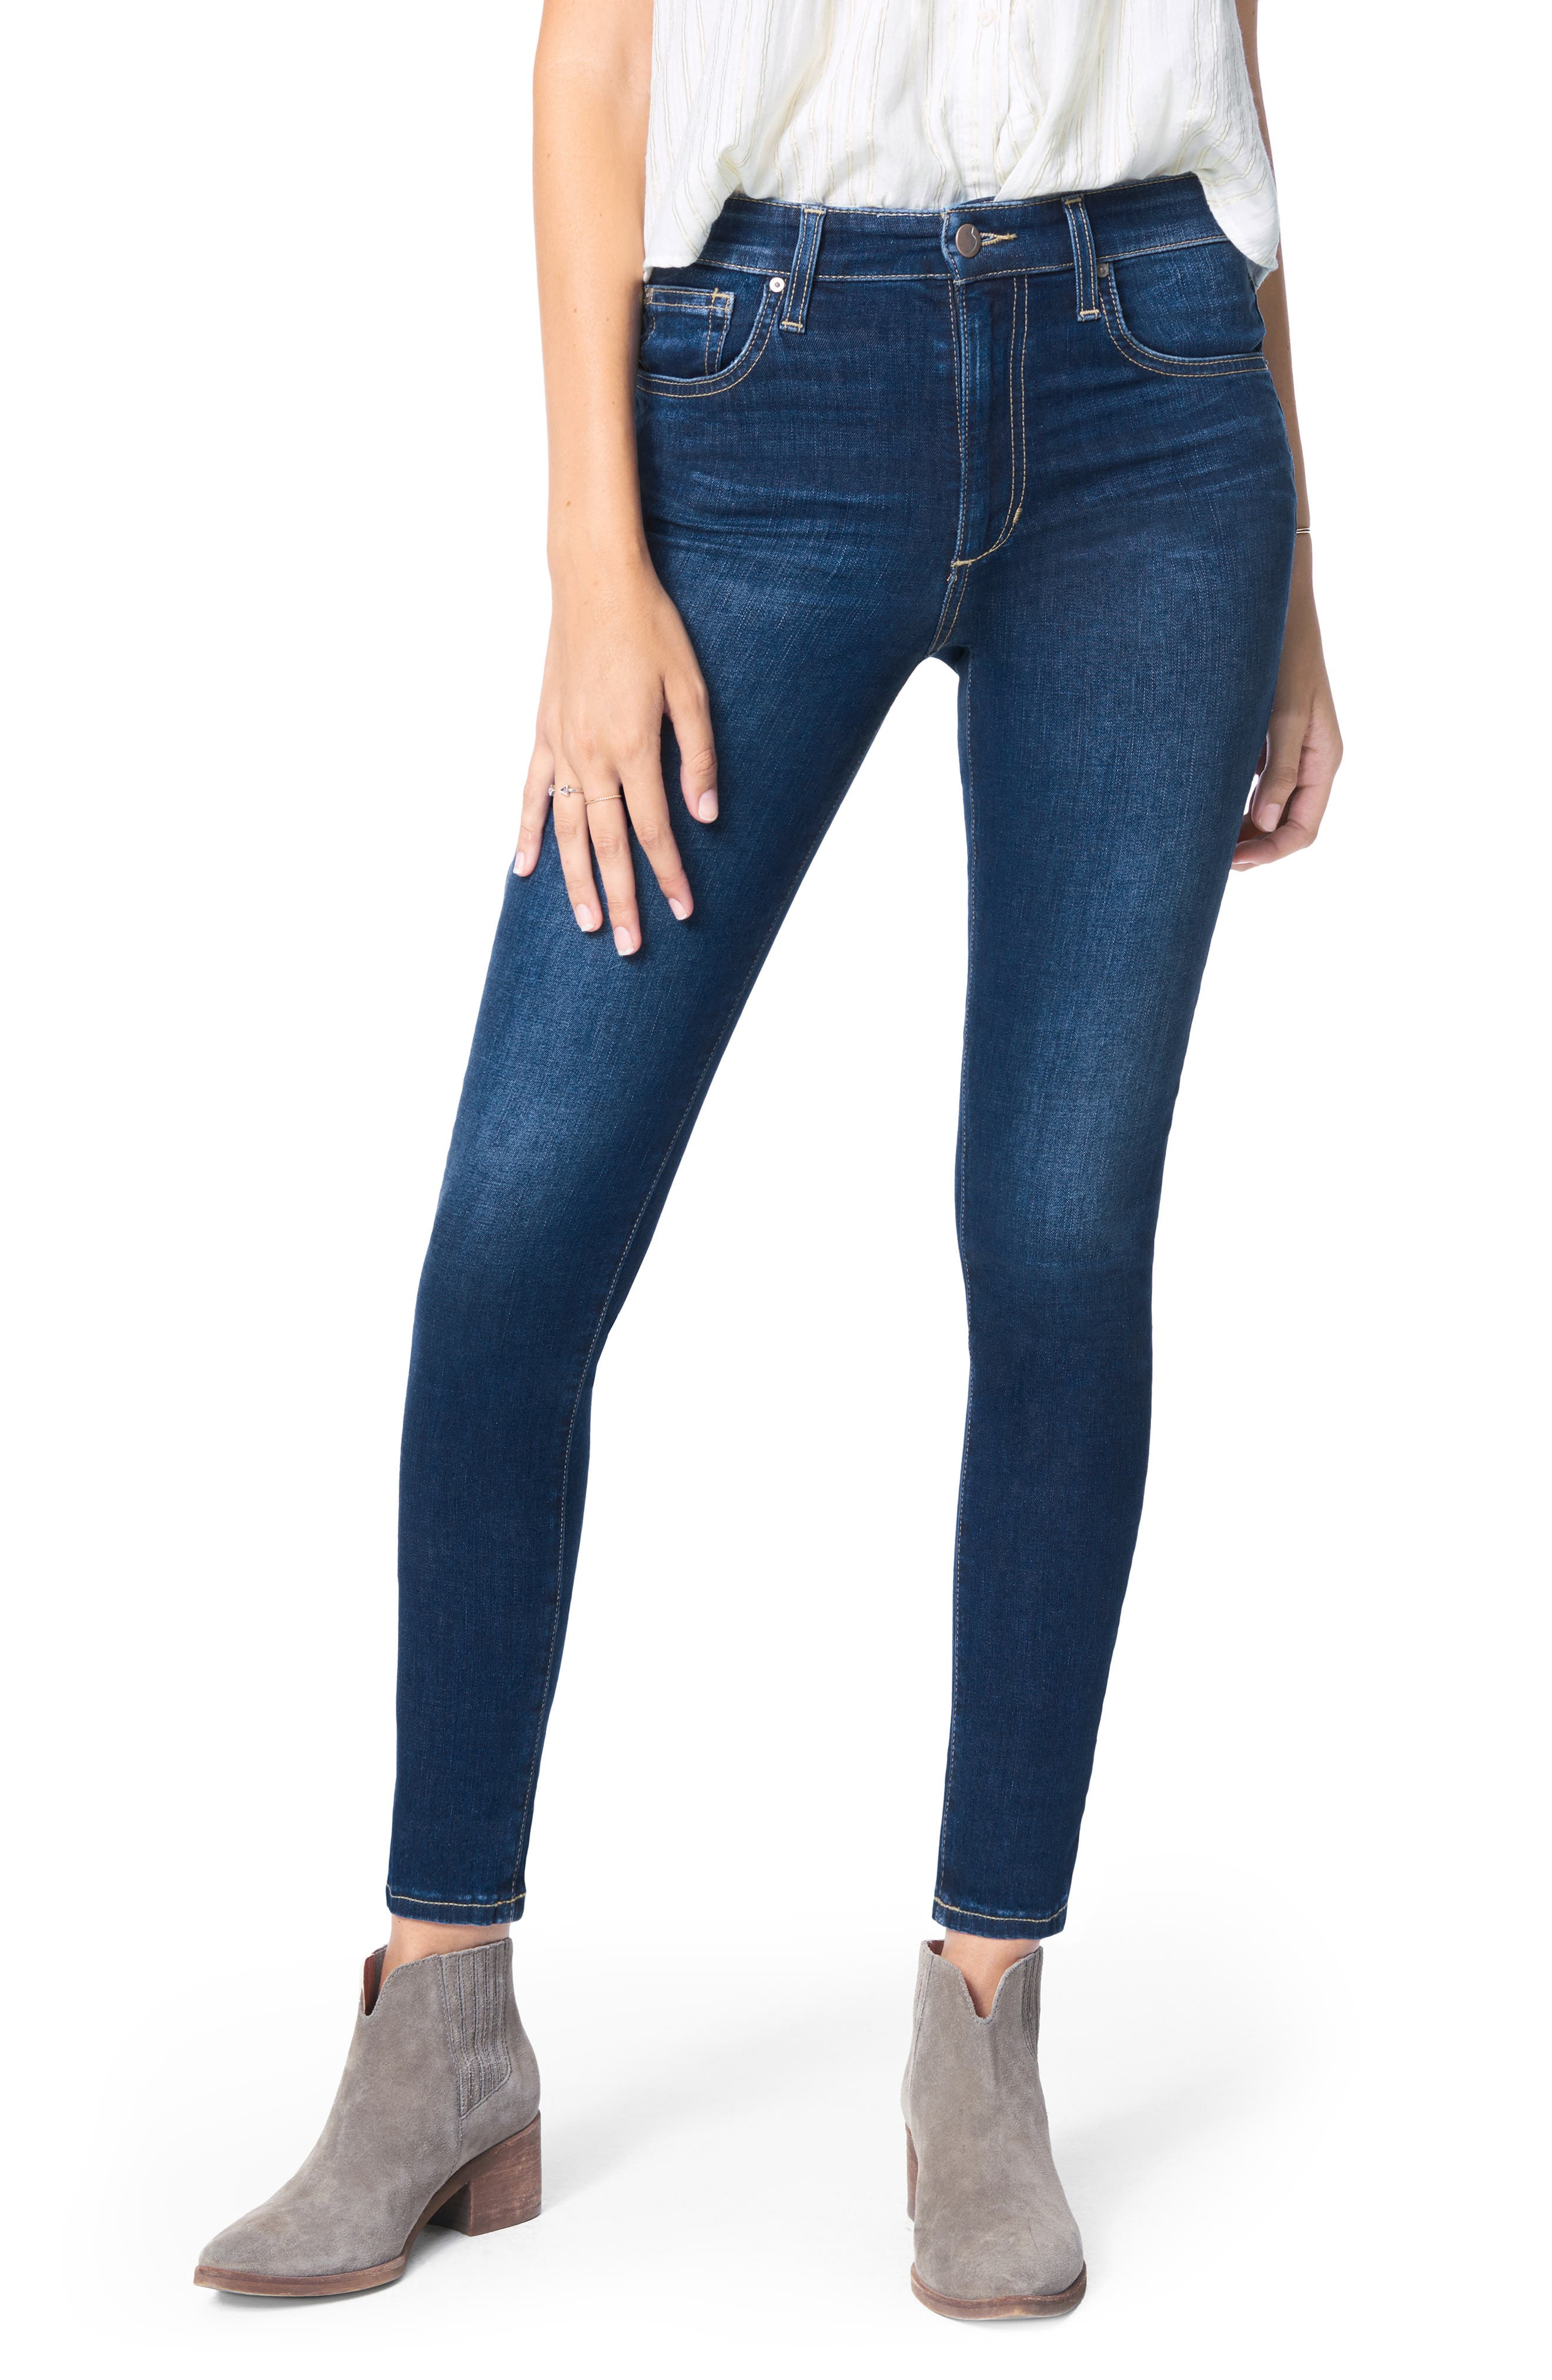 A classic medium wash makes these high-waisted skinny jeans sleek go-tos for any day of the week. Style Name: Joe\\\'s The Charlie High Waist Ankle Skinny Jeans (Ennio). Style Number: 5973580. Available in stores.